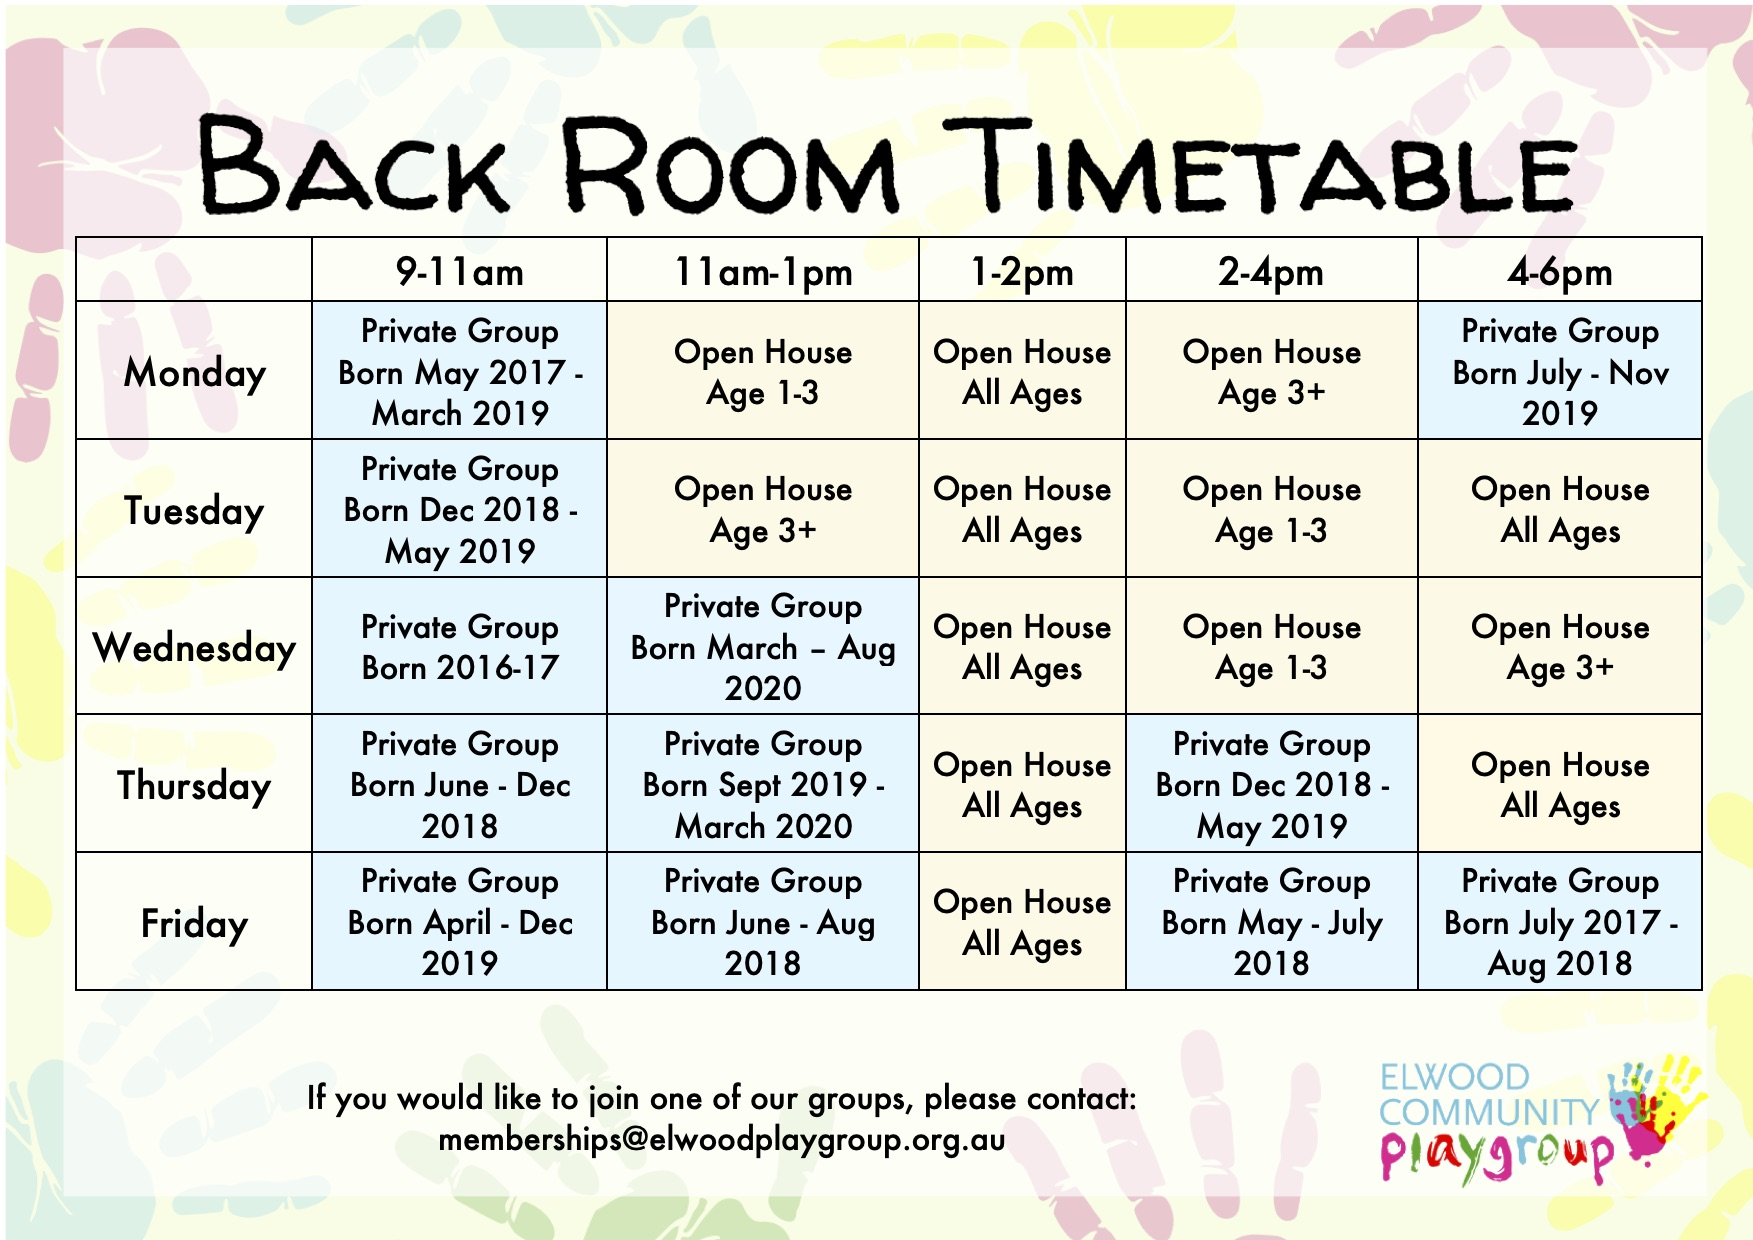 Back Room Timetable1